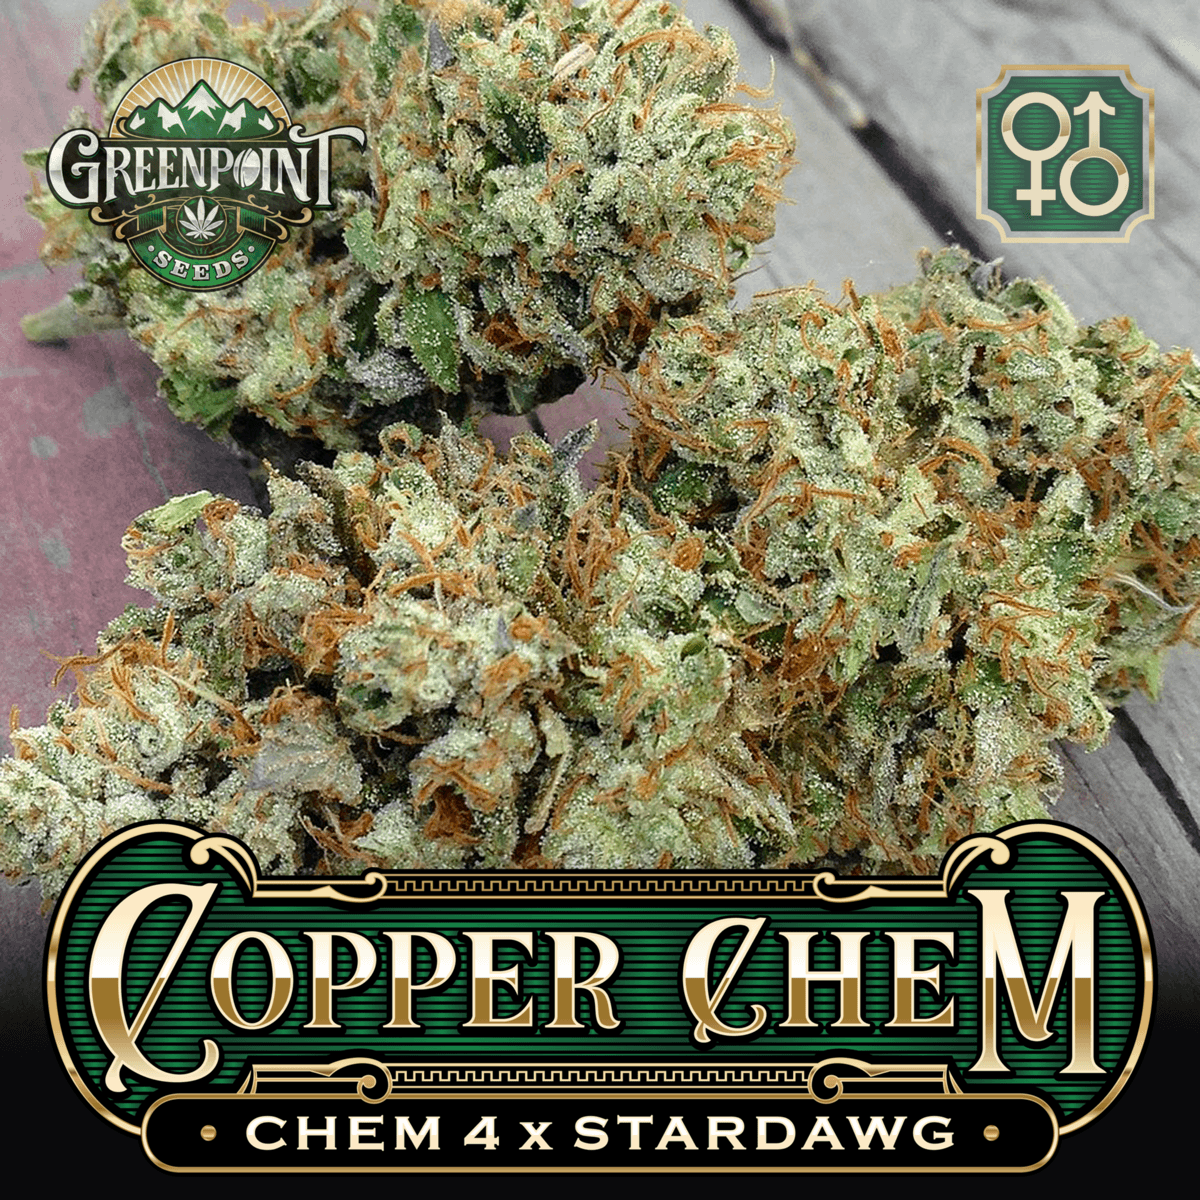 Copper Chem Cannabis Seeds - Chem 4 X Stardawg | Greenpoint Seeds